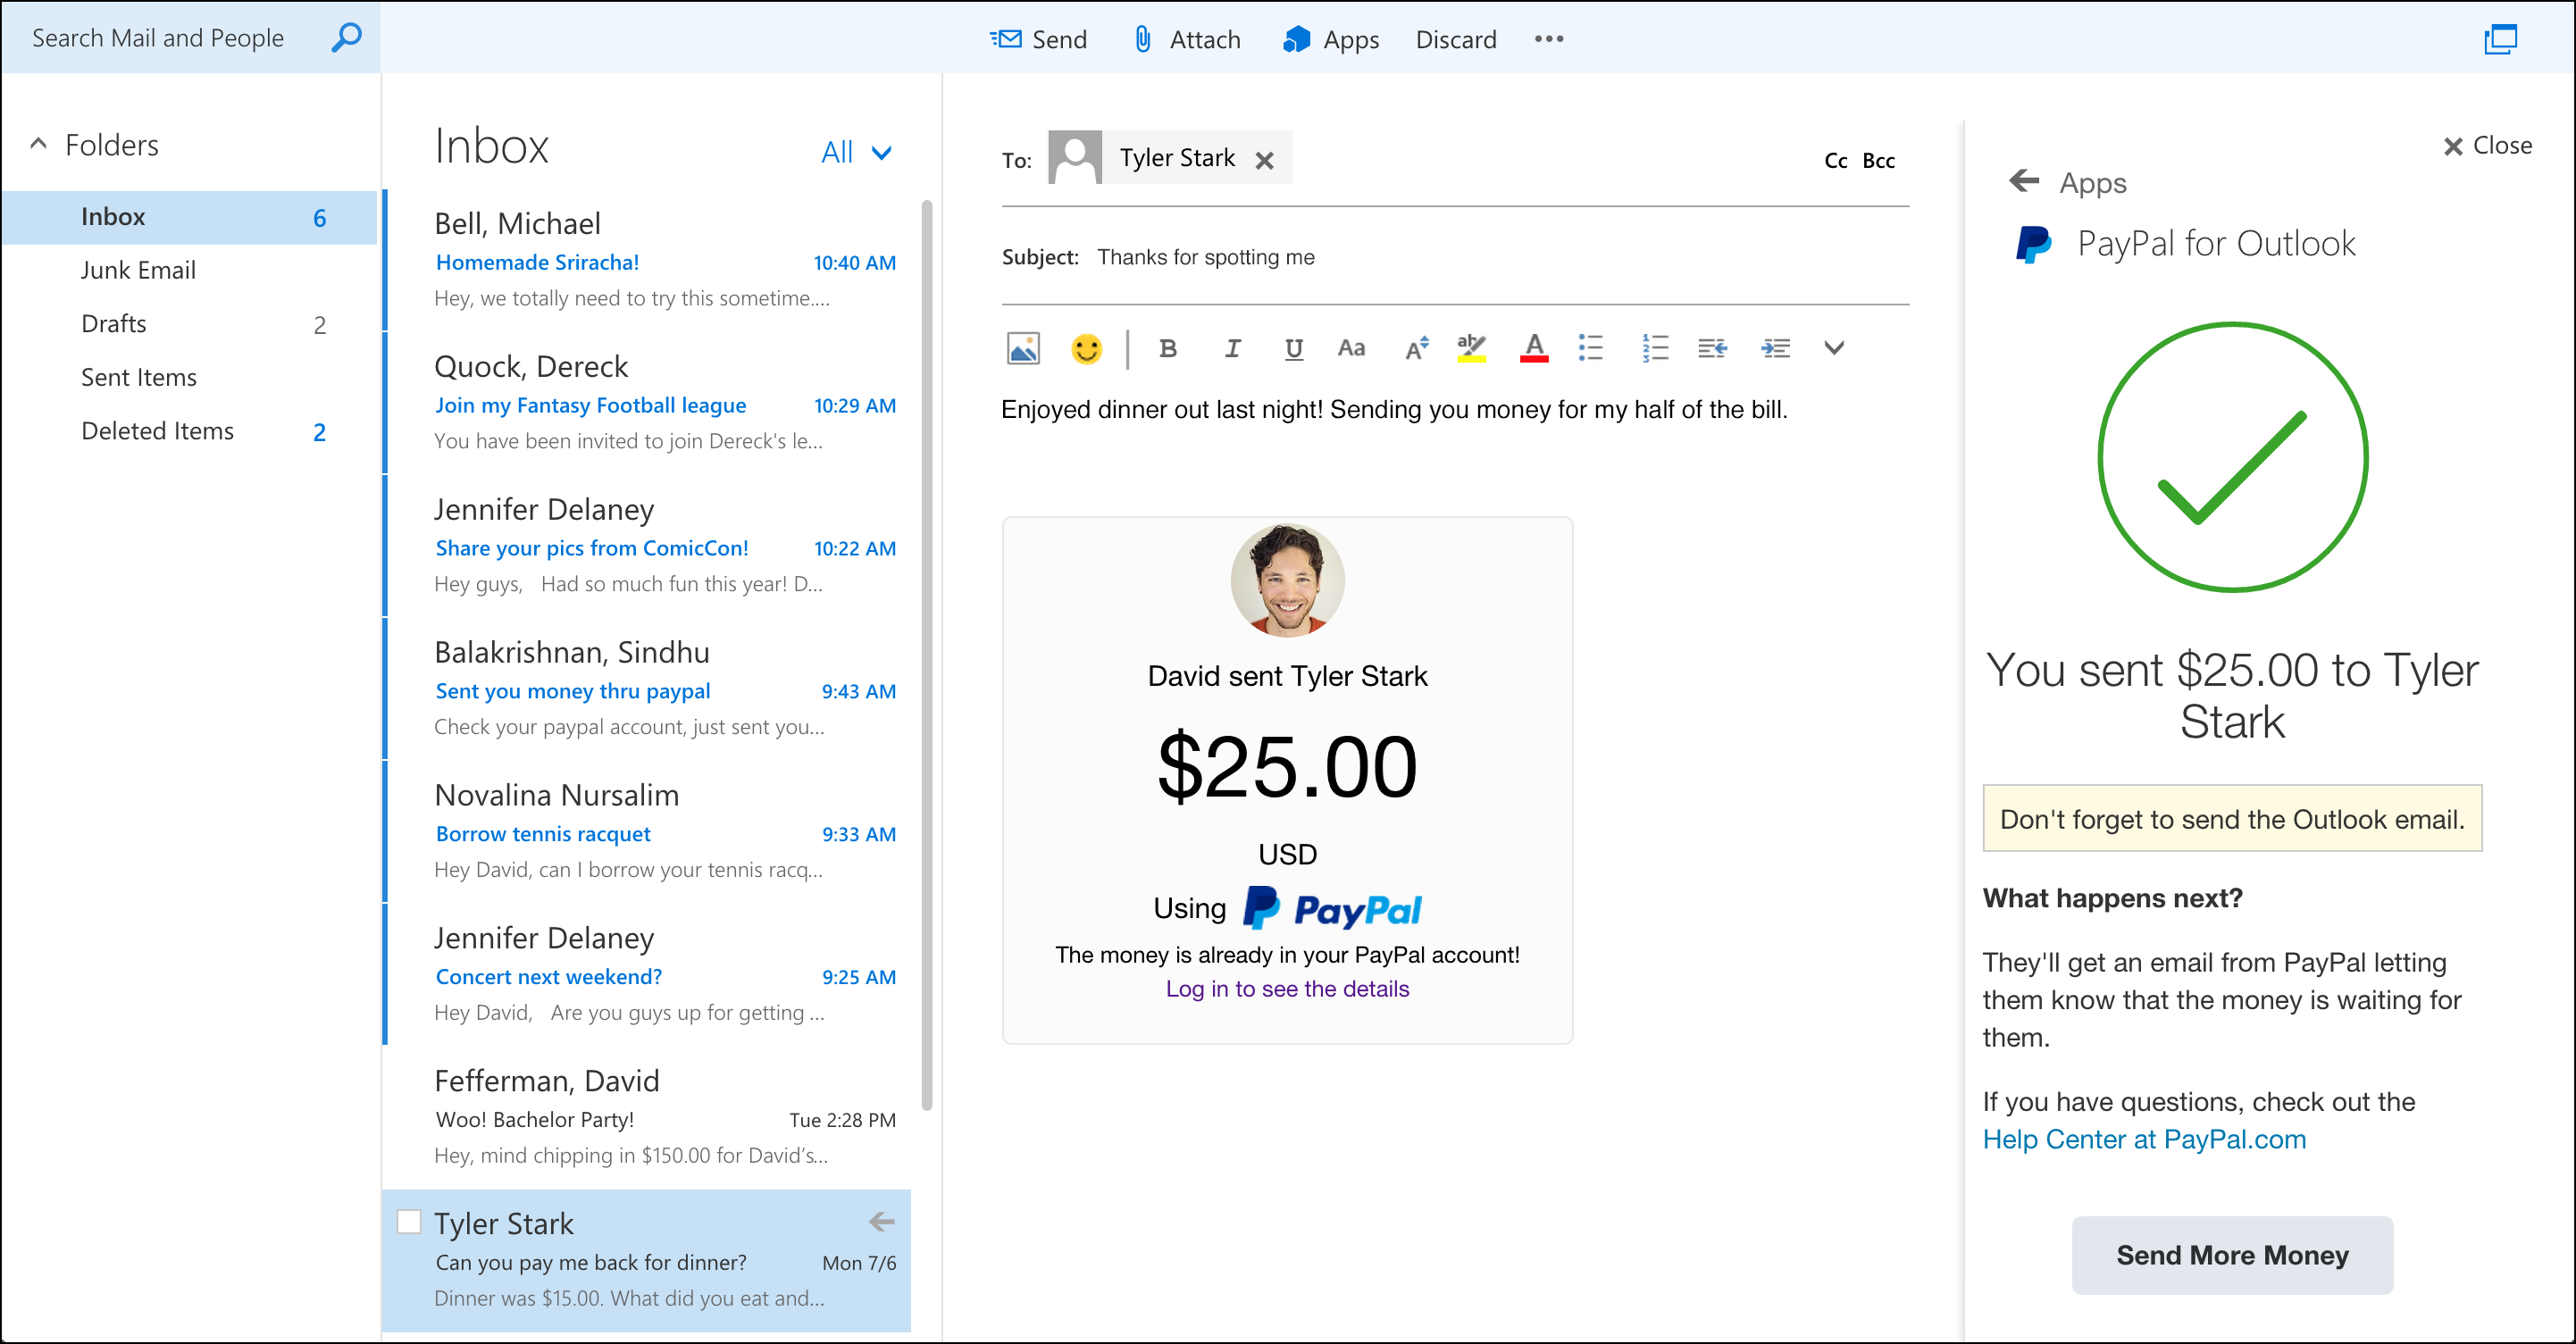 New Outlook partner add-ins and expanded rollout of Outlook